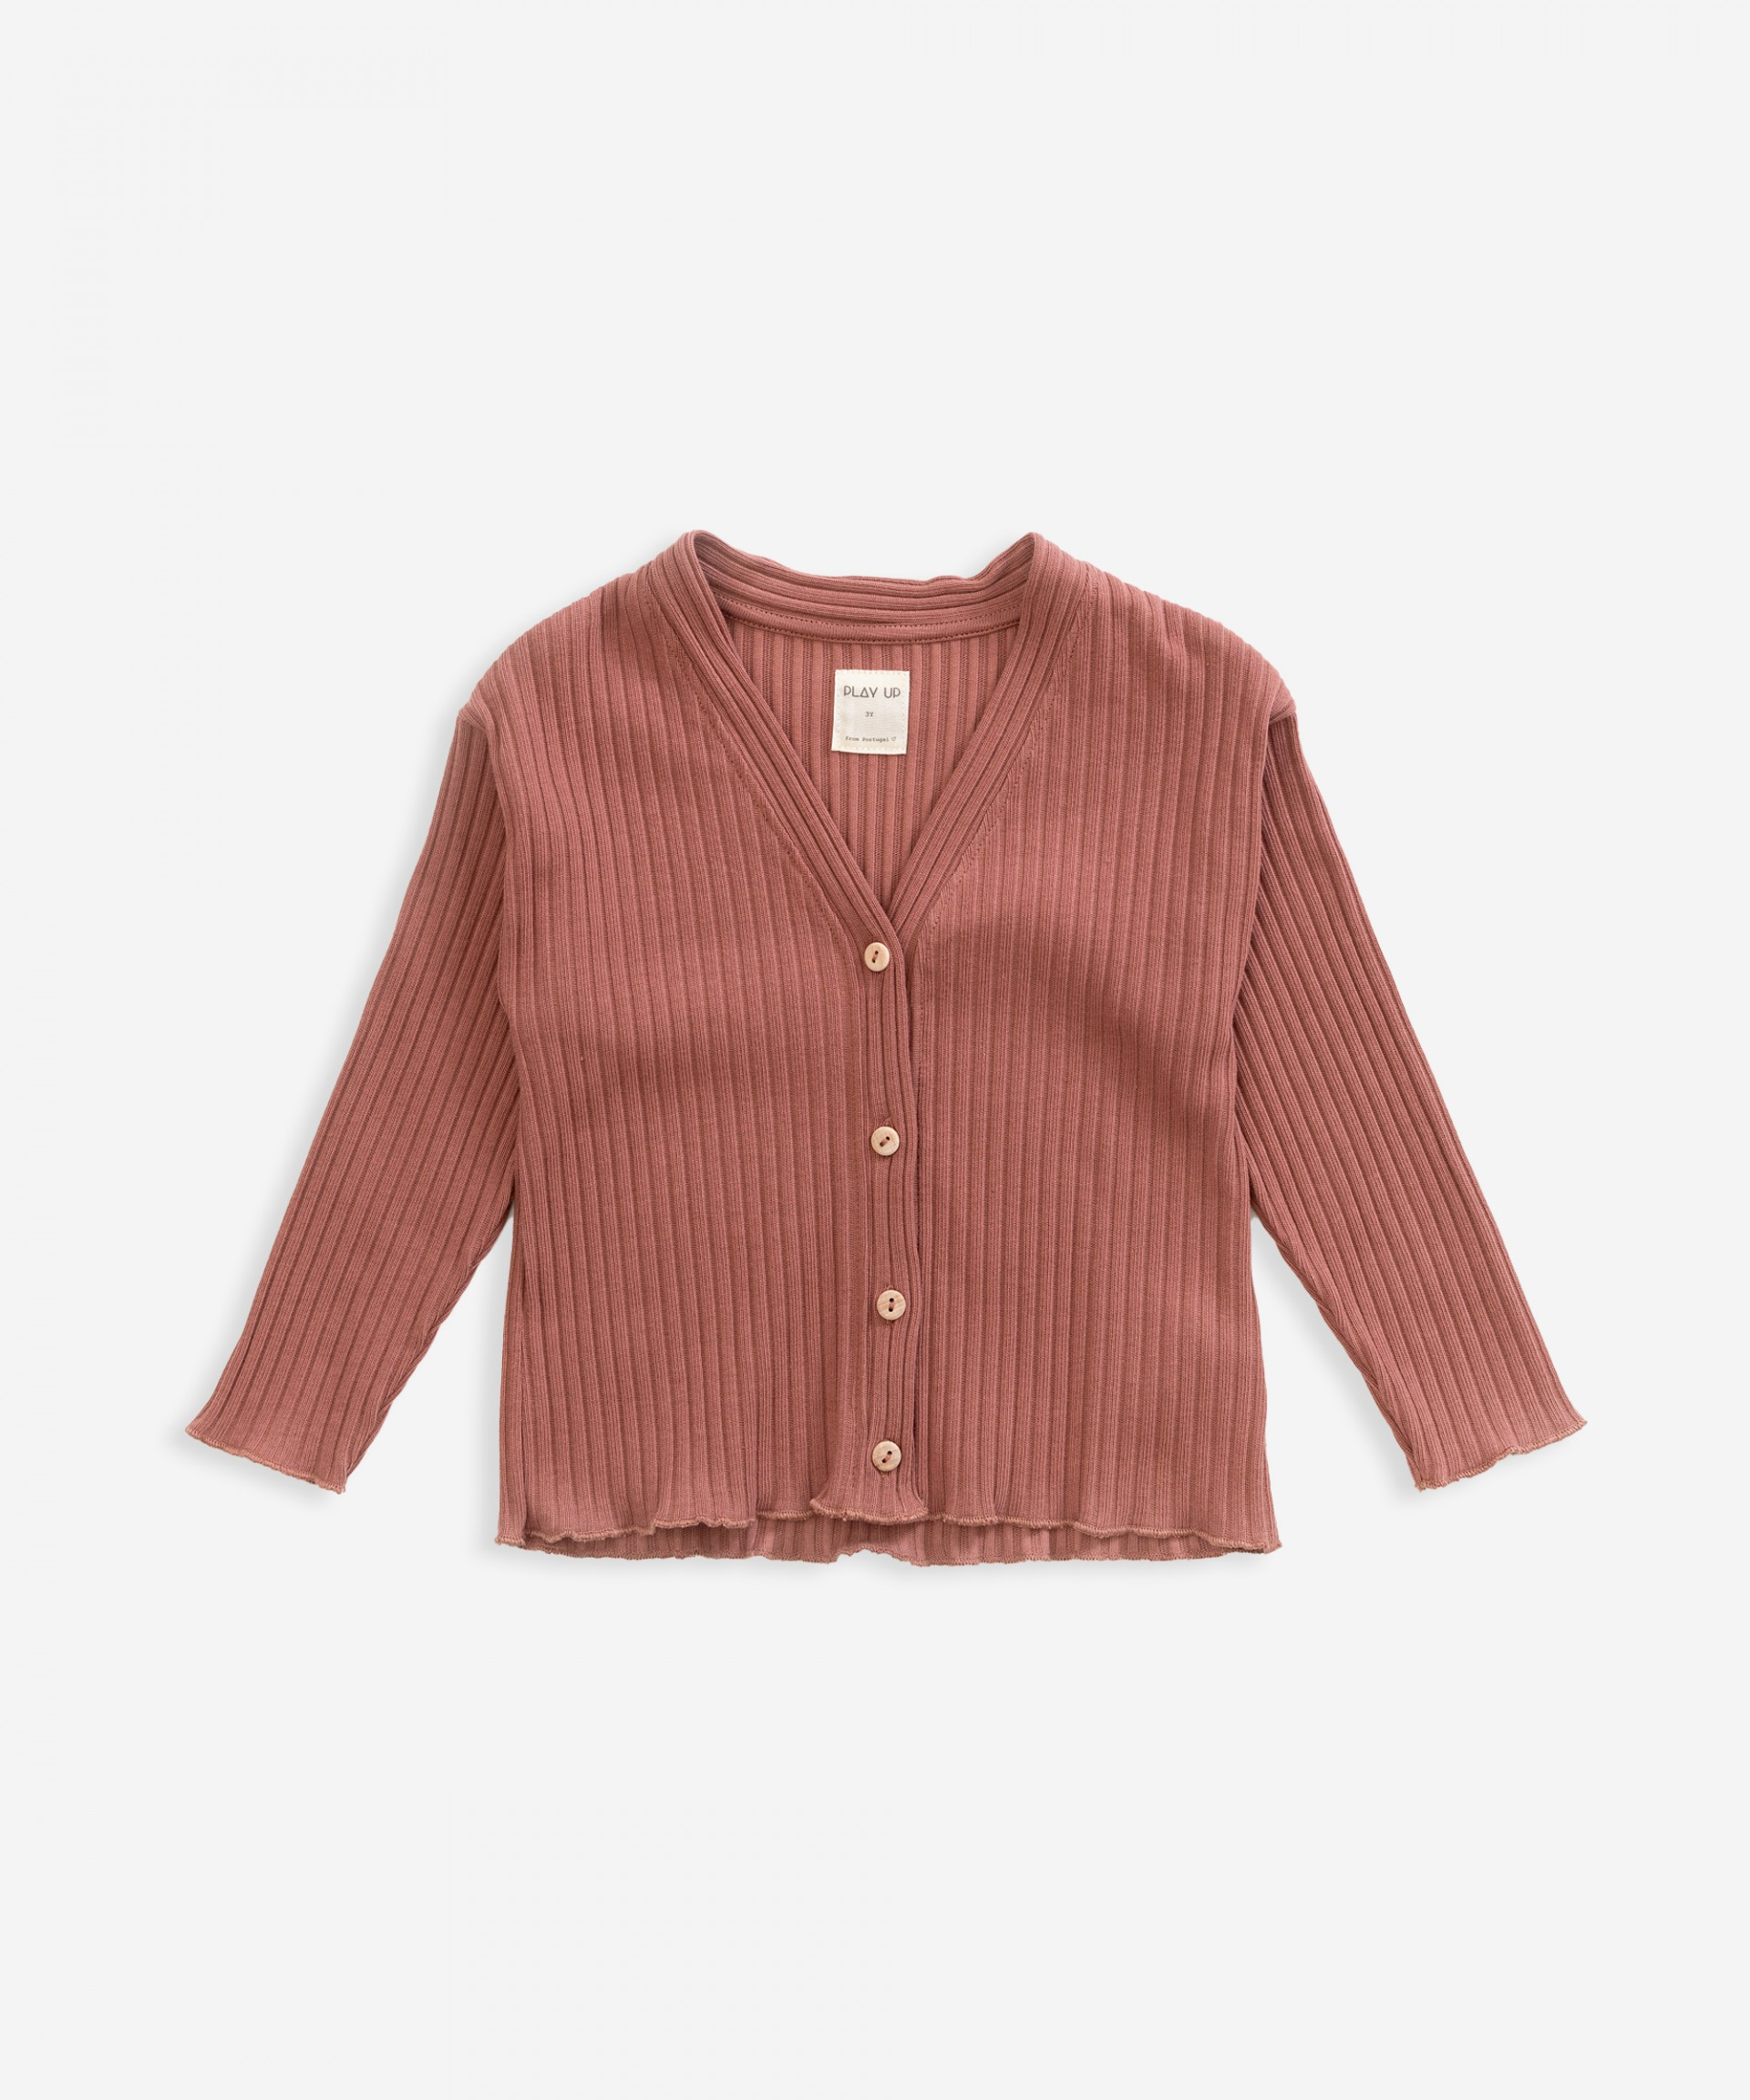 Cardigan with frill | Weaving